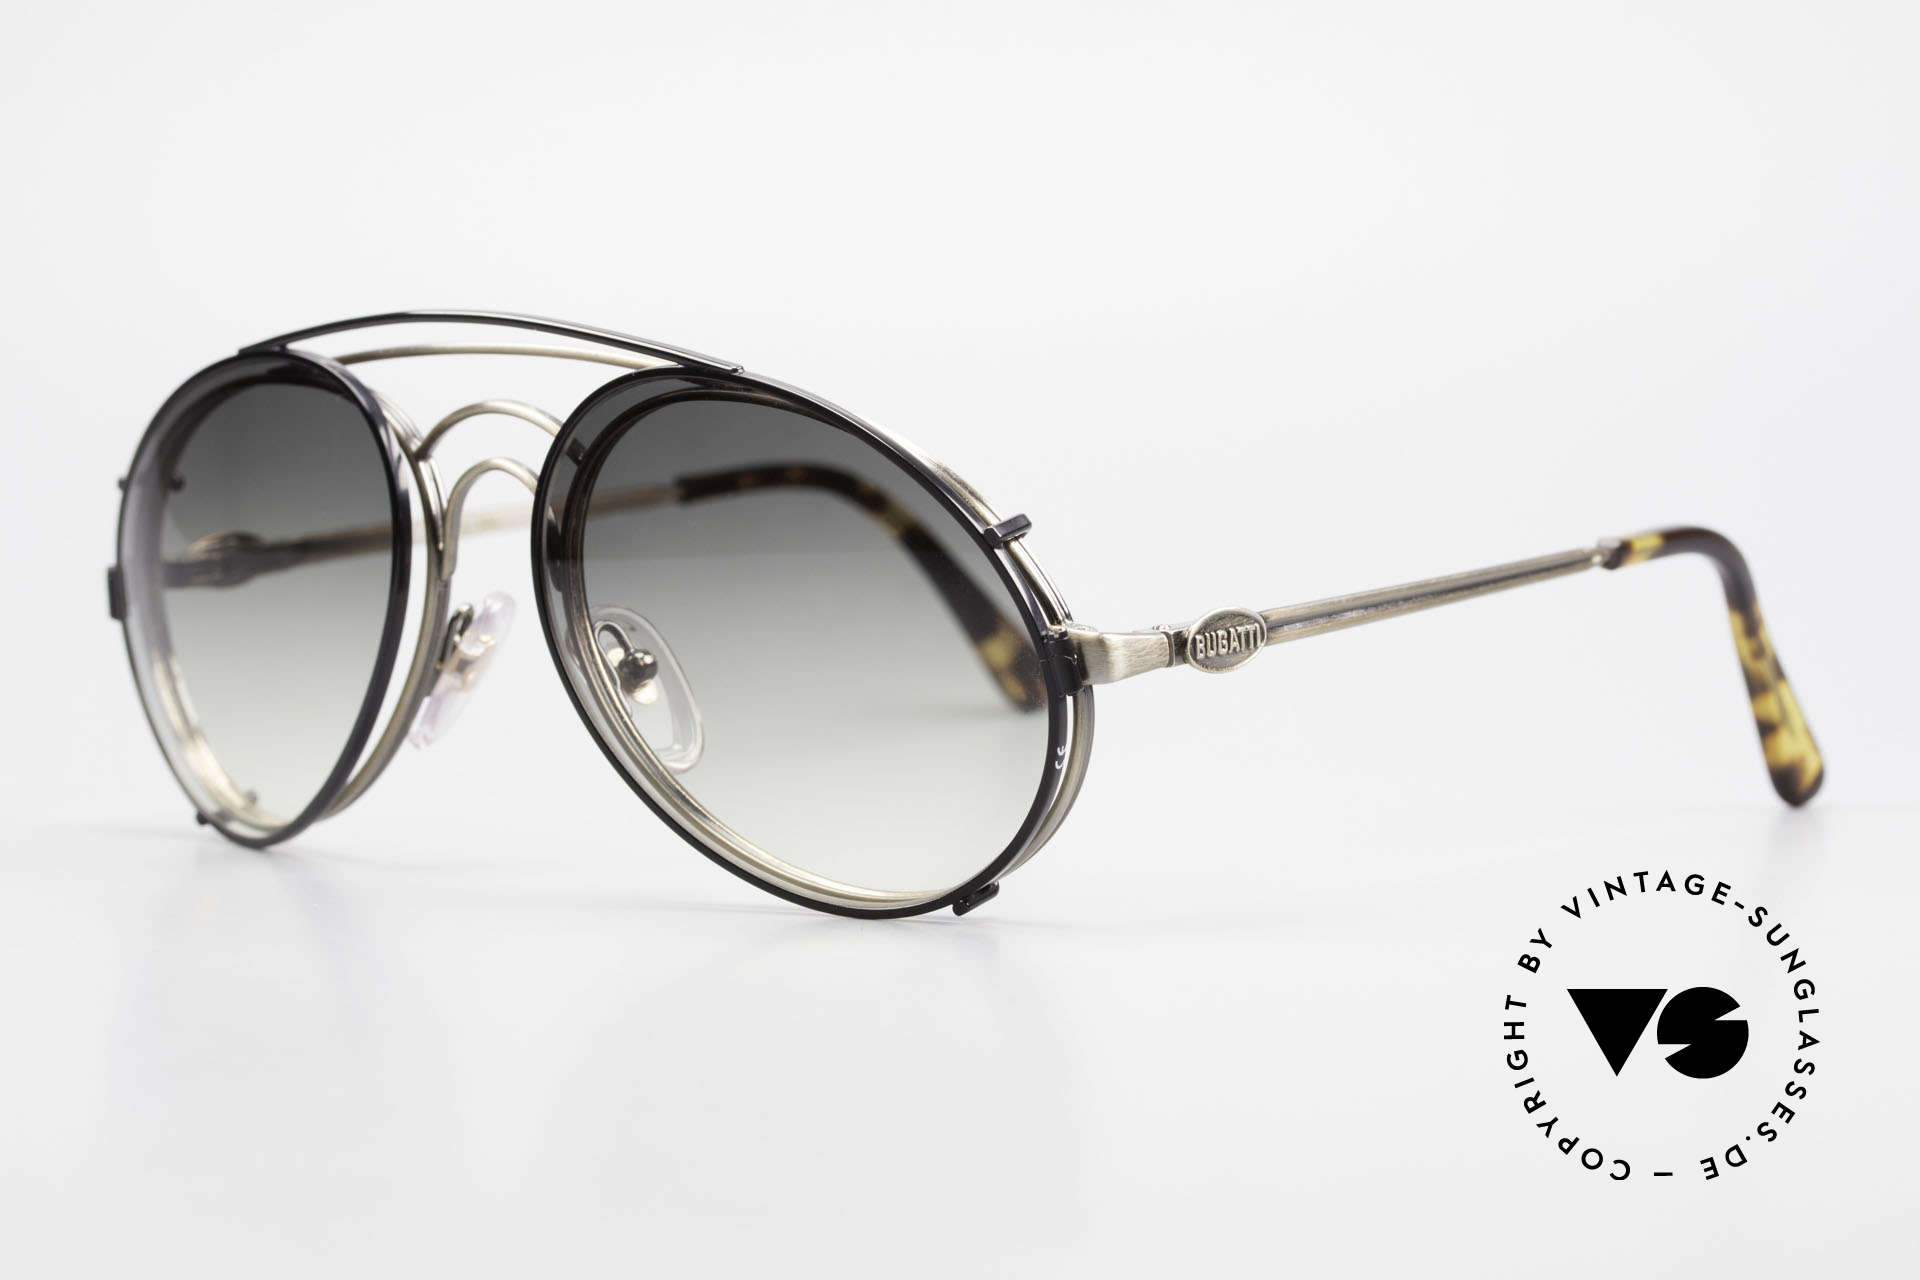 Bugatti 07823 Old 80's Glasses With Sun Clip, with flexible spring hinges (1. class wearing comfort), Made for Men